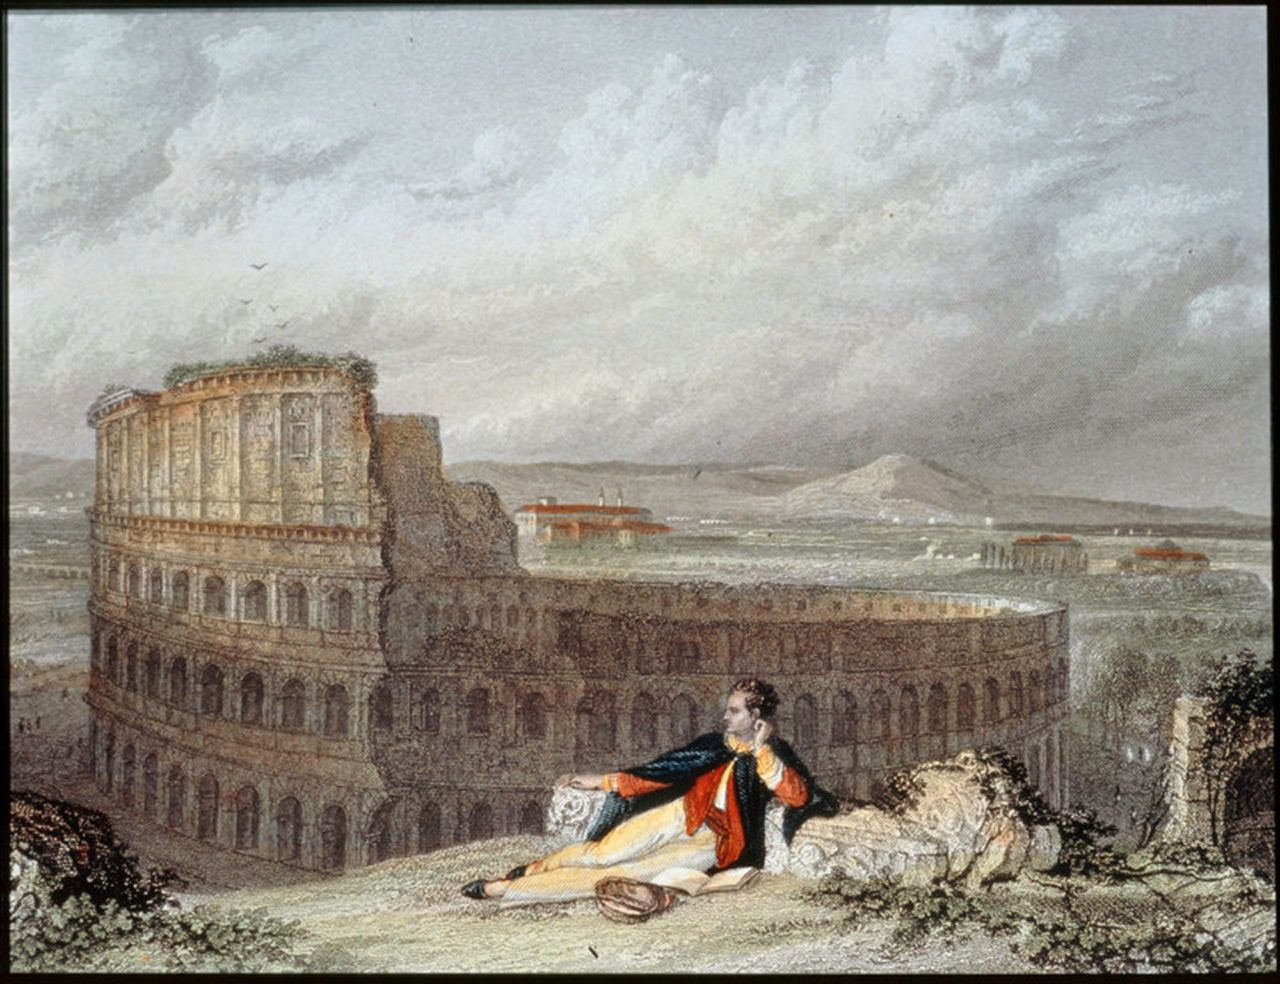 Lord George Byron contemplating the Colosseum in Rome by Arthur Willmore